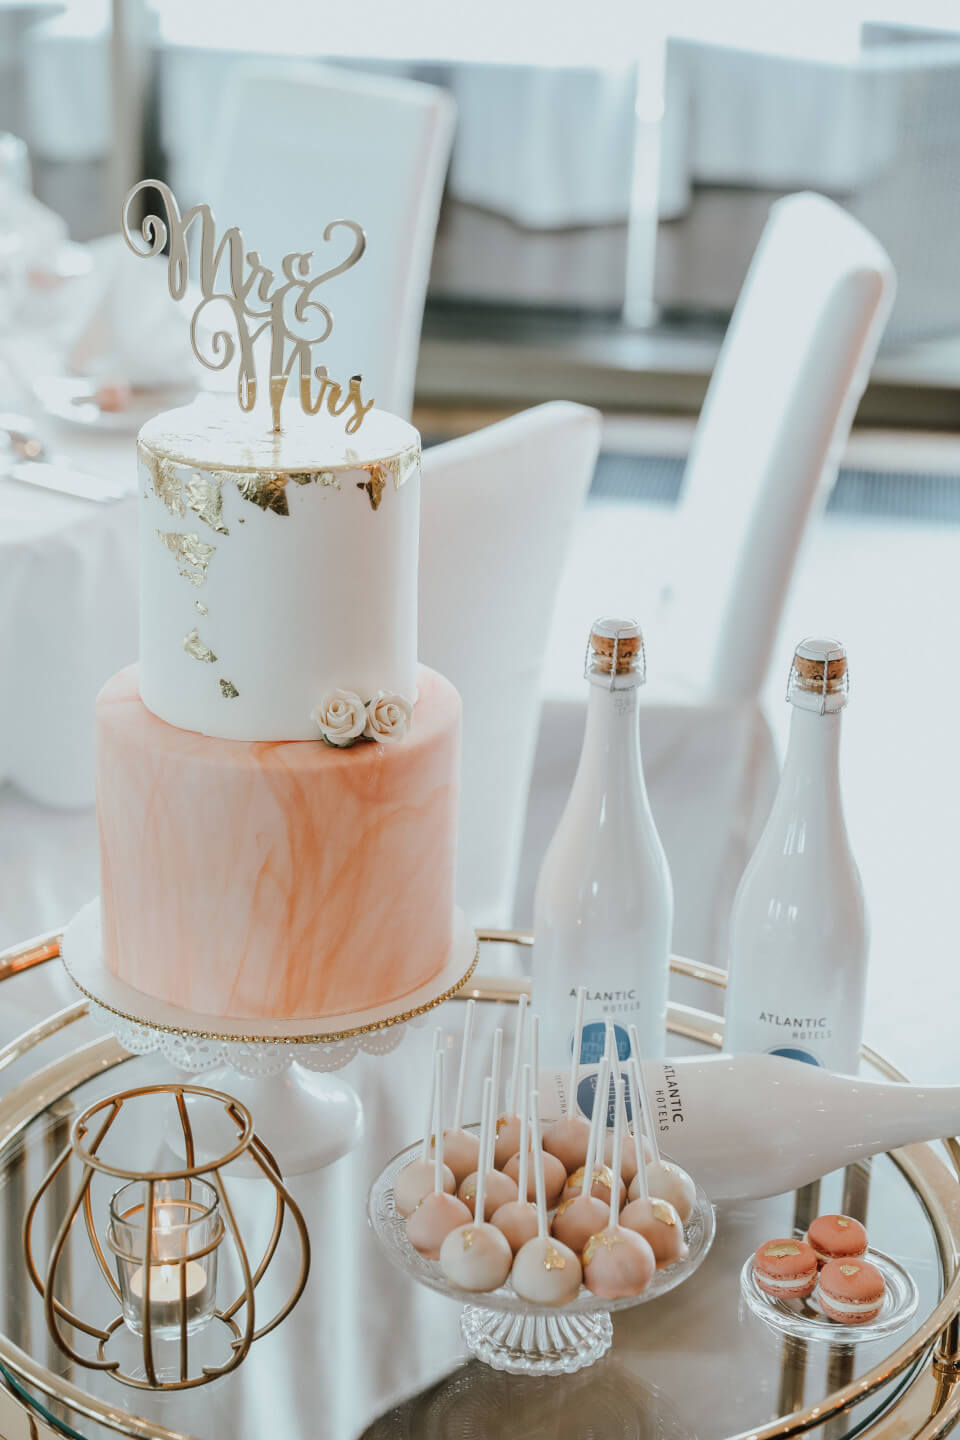 weddingcake and ATLANTIC sparkling wine bottles